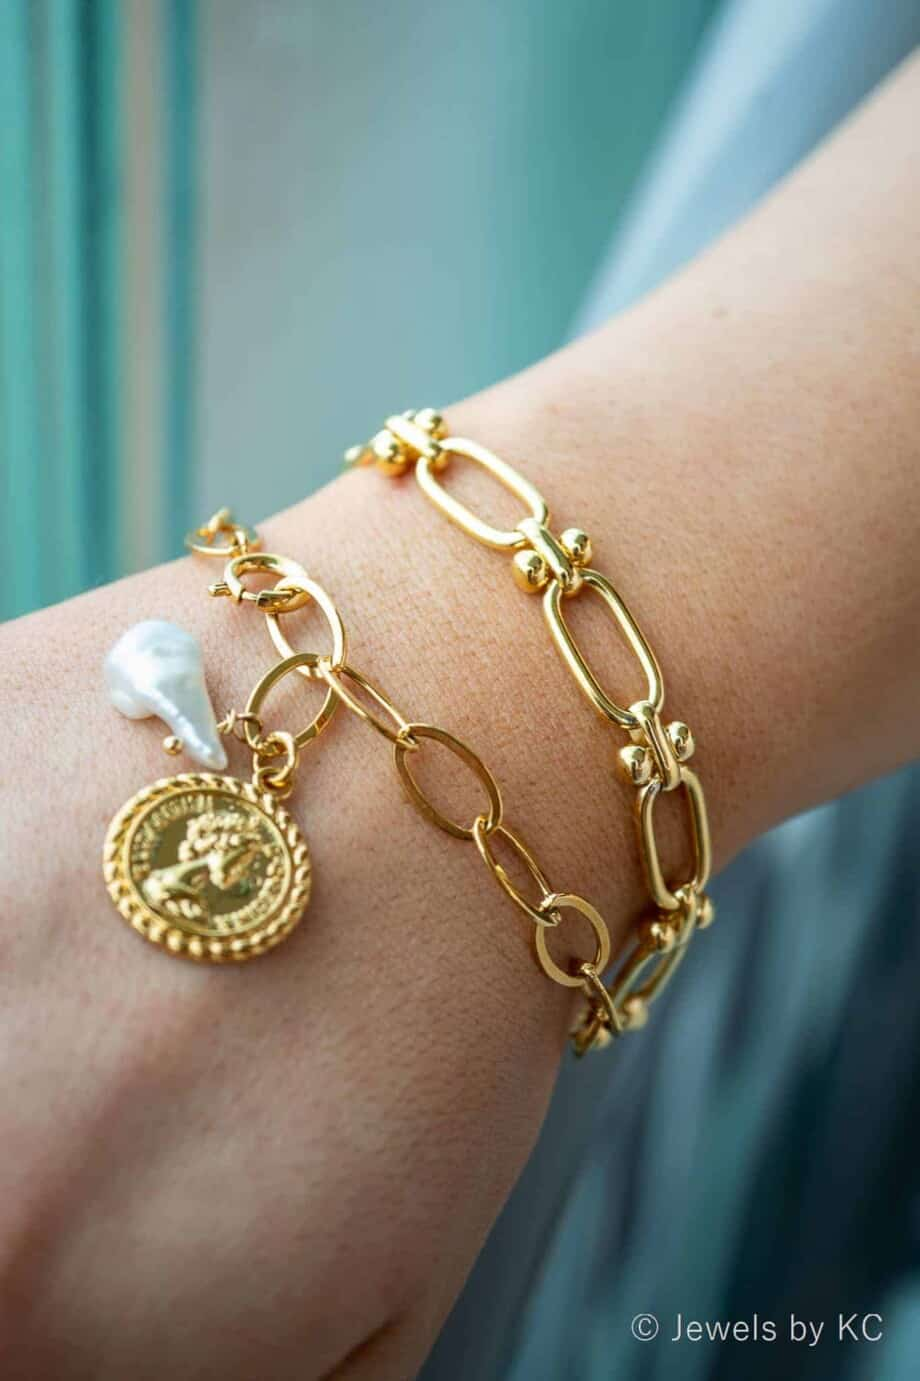 Gouden armband 'Coin and Pearl' van Goldplated messing